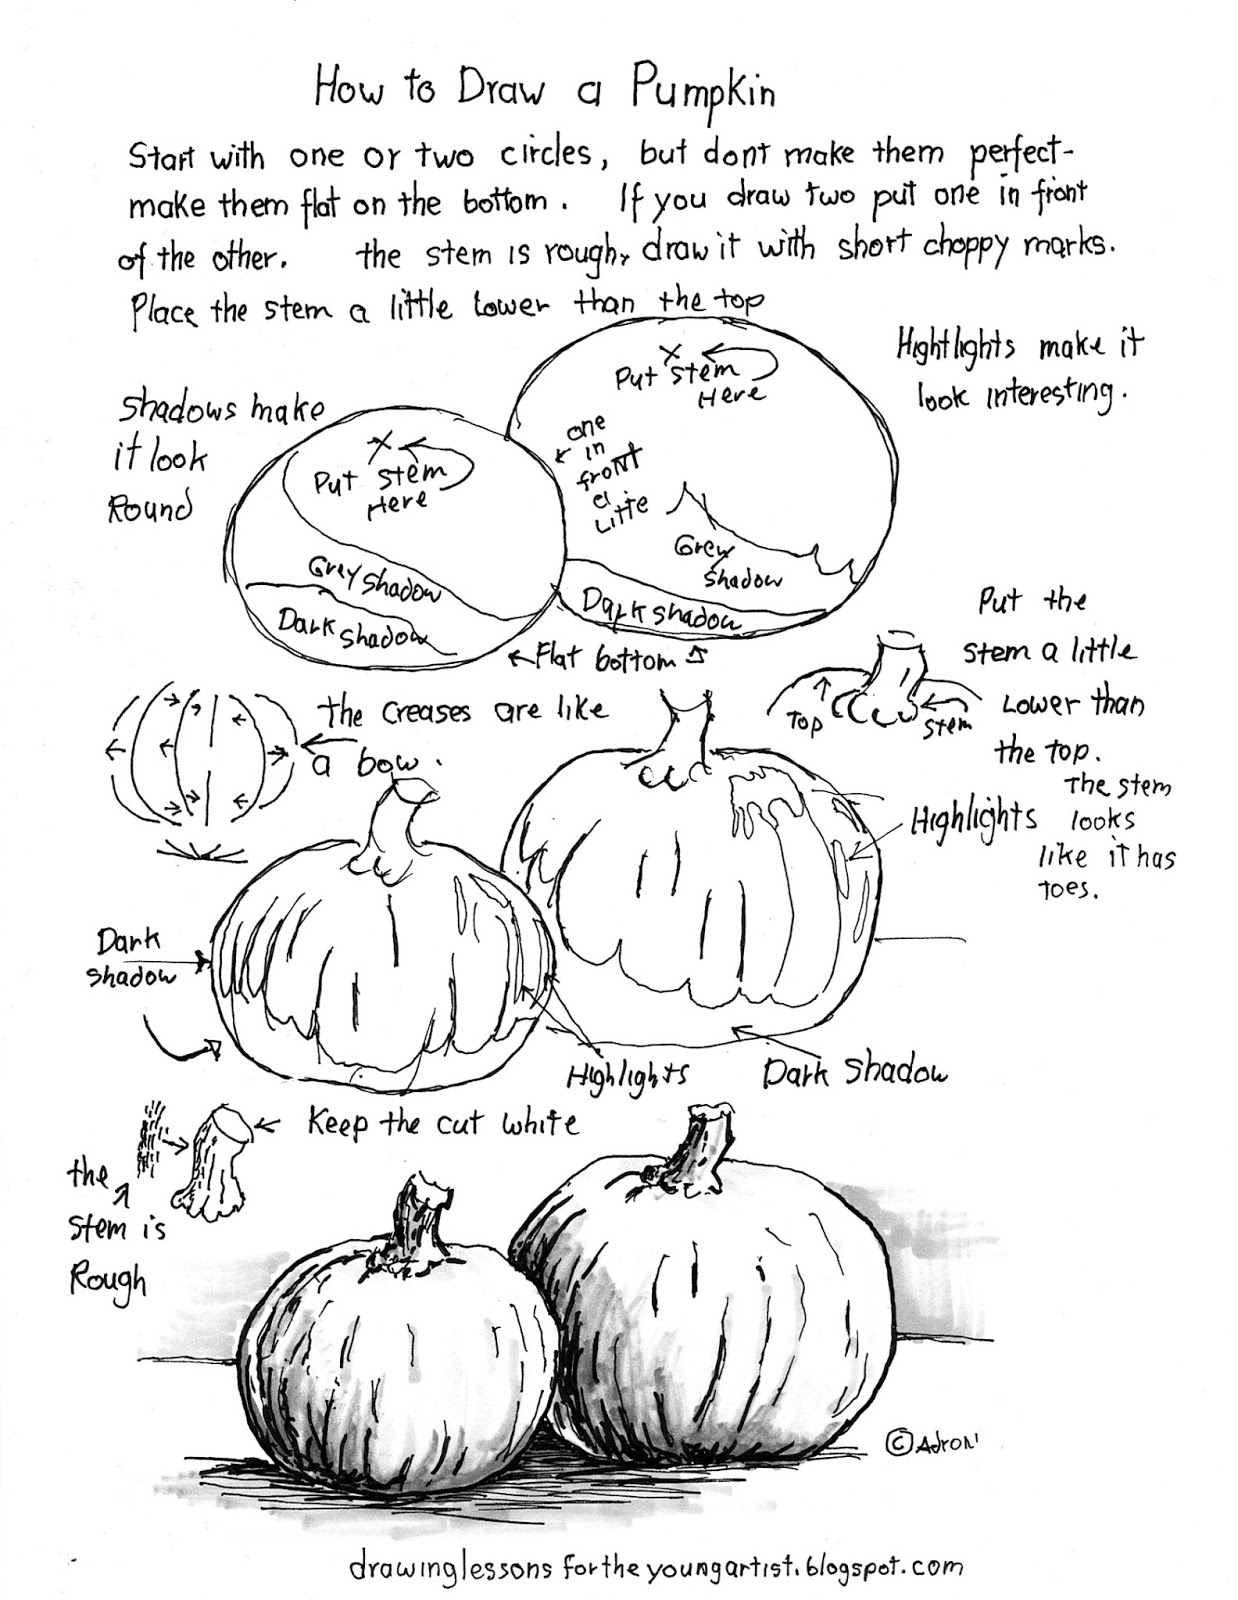 How To Draw Worksheets For The Young Artist How To Draw A Pumpkin Worksheet And Lesson